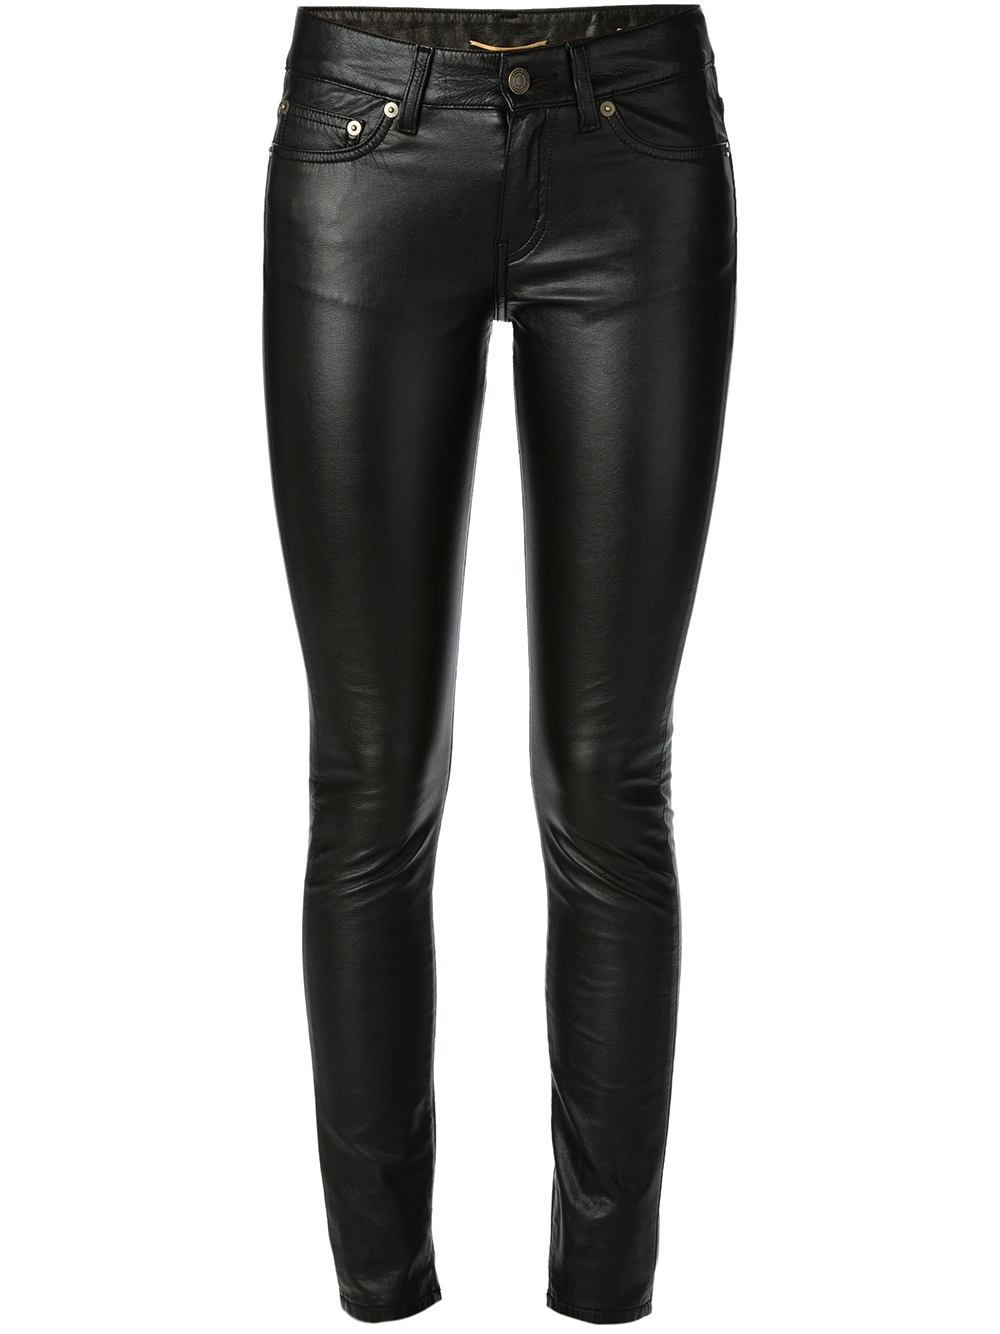 Saint laurent Eco Leather Skinny Jeans in Black  Lyst